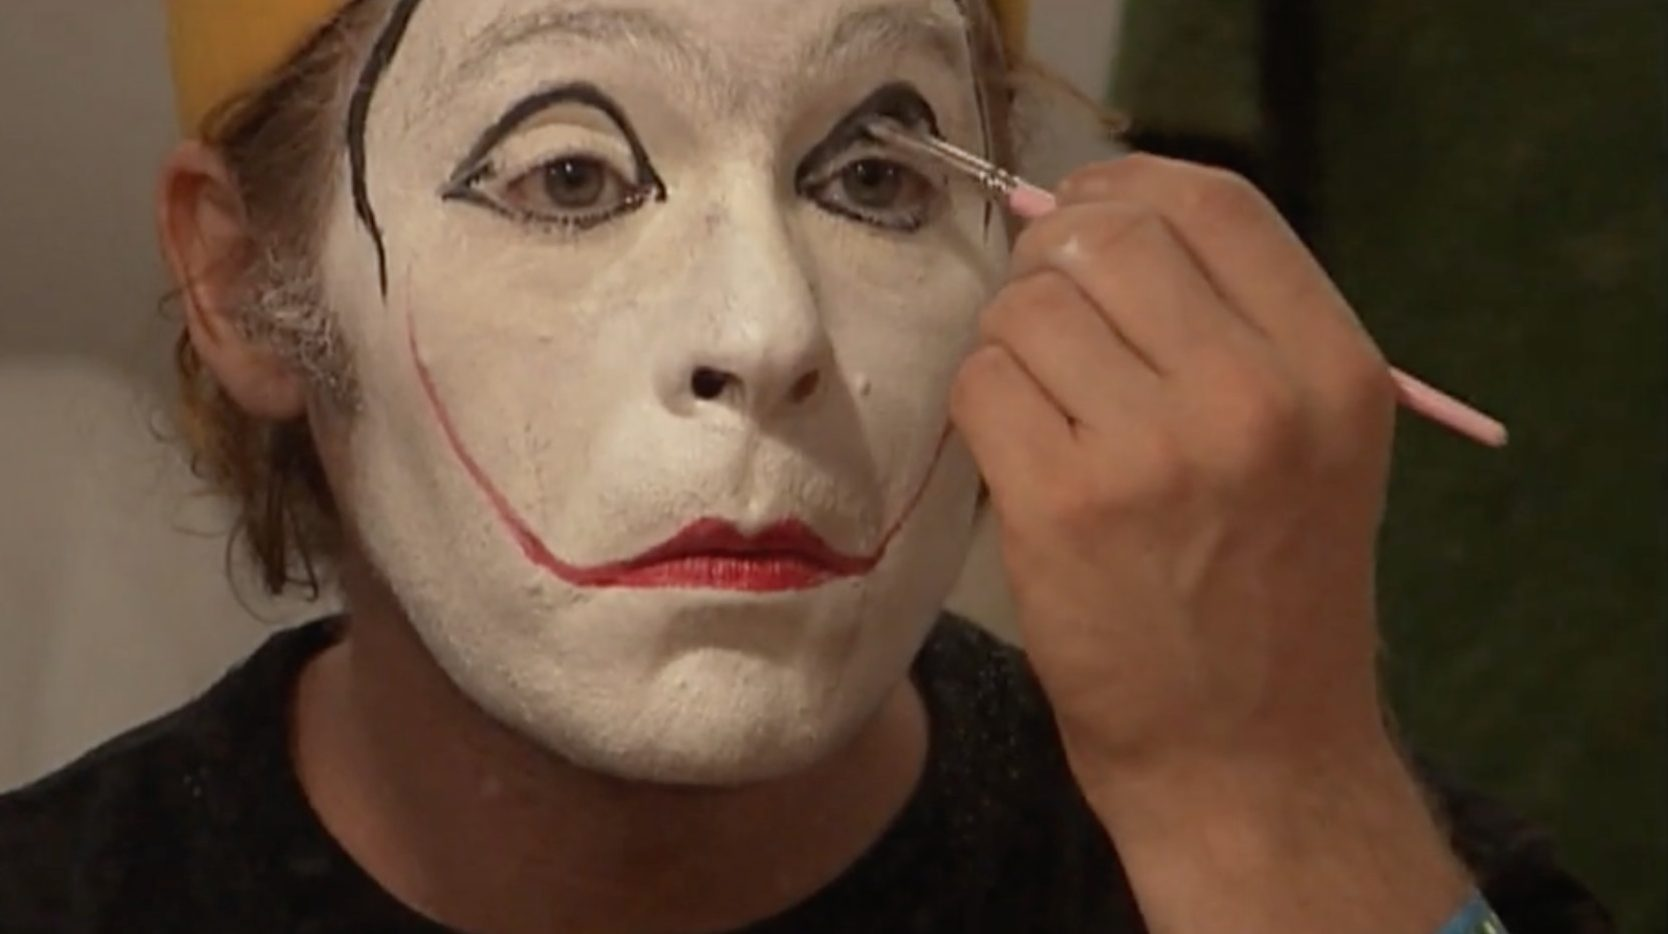 The Clown Without A Mask